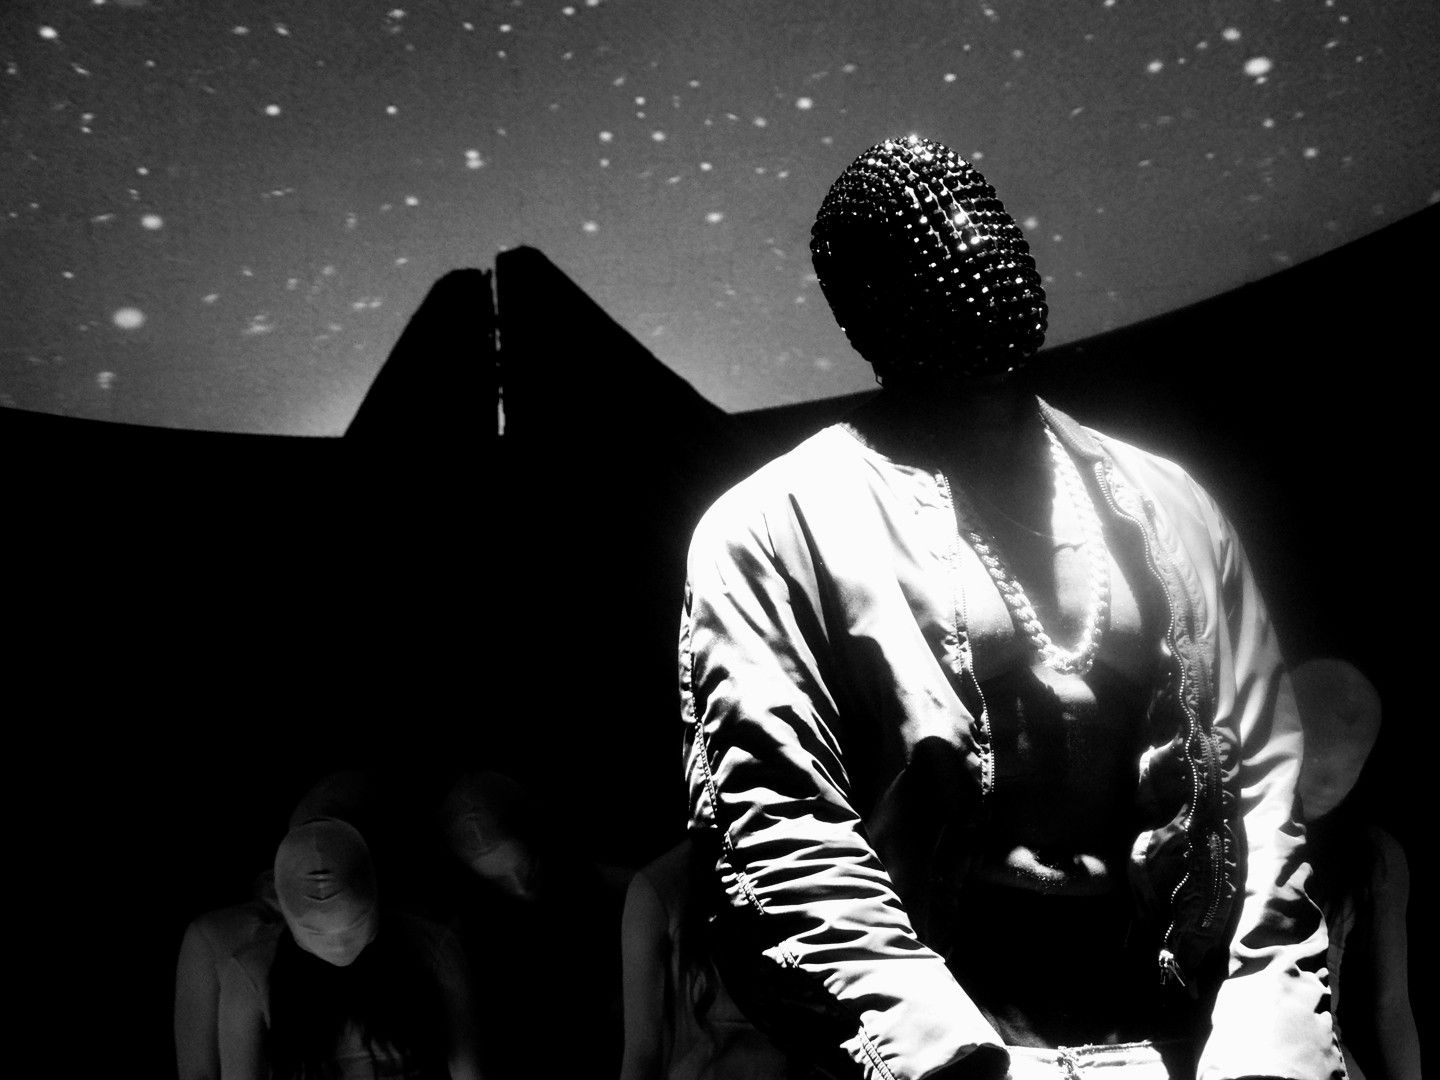 Kanye west iphone wallpaper tumblr - Hd Yeezus Tour Wallpapers Desktop Phone Updated Kanye